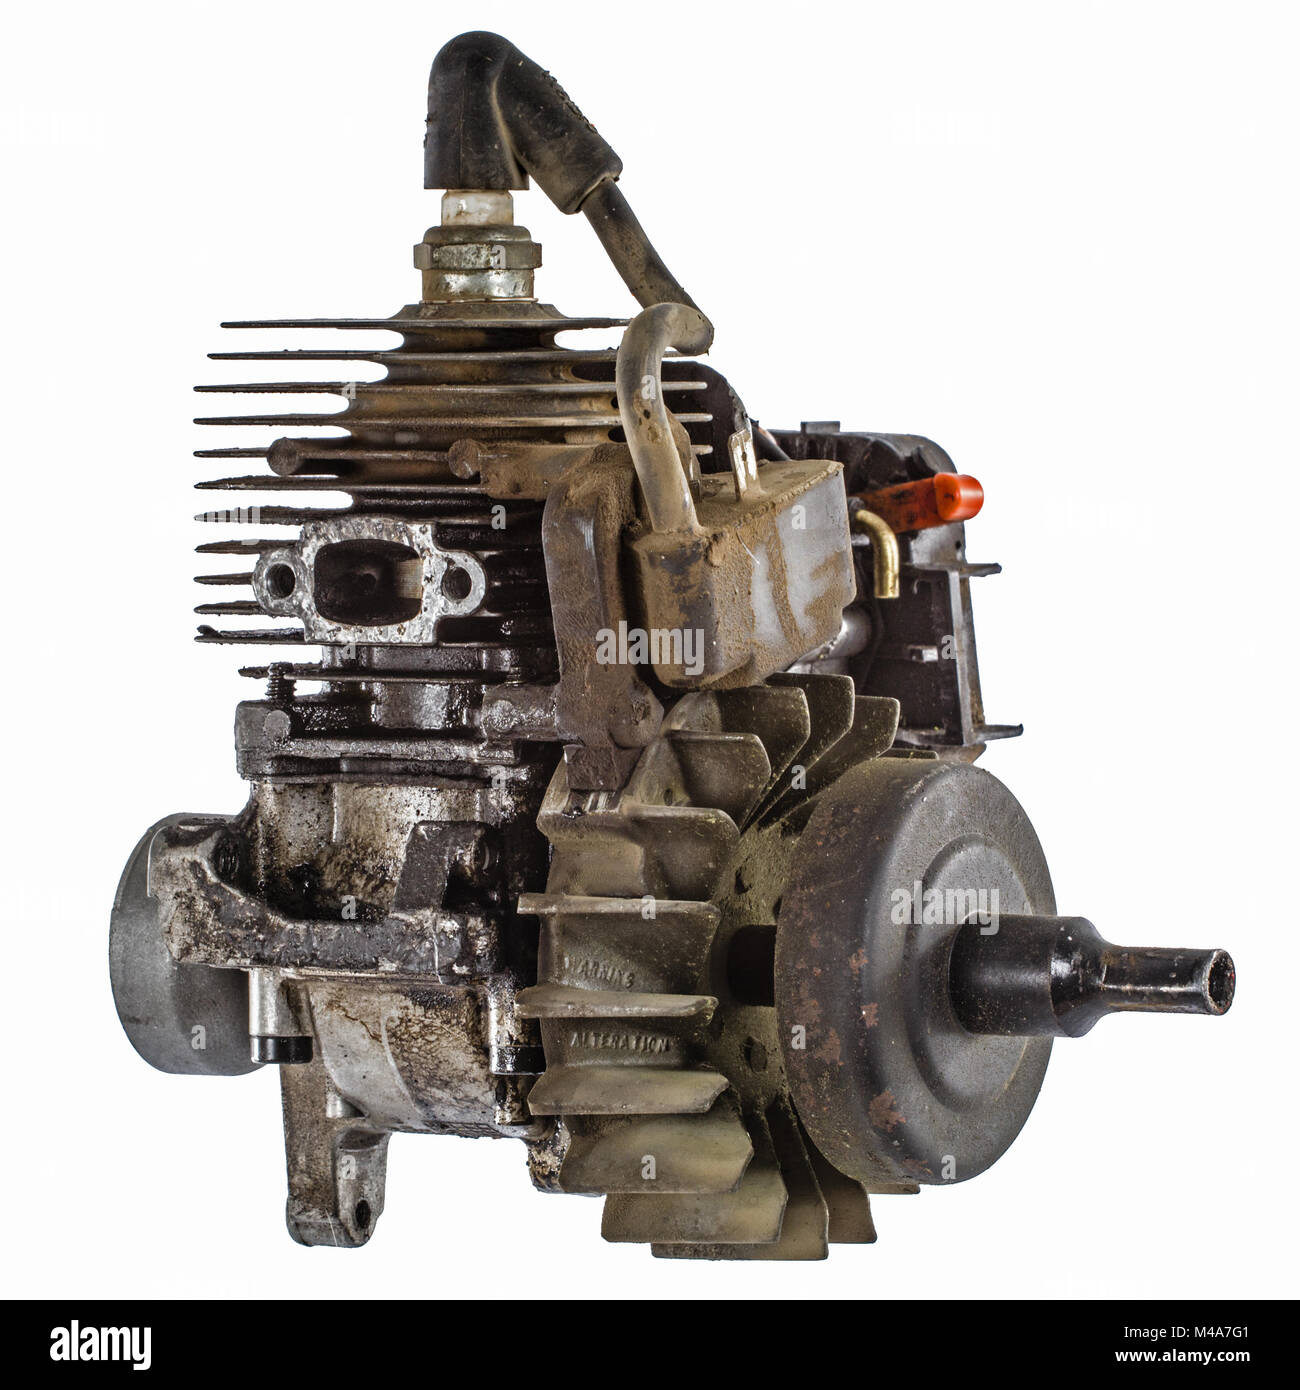 Old internal combustion engine, isolated on white background Stock Photo